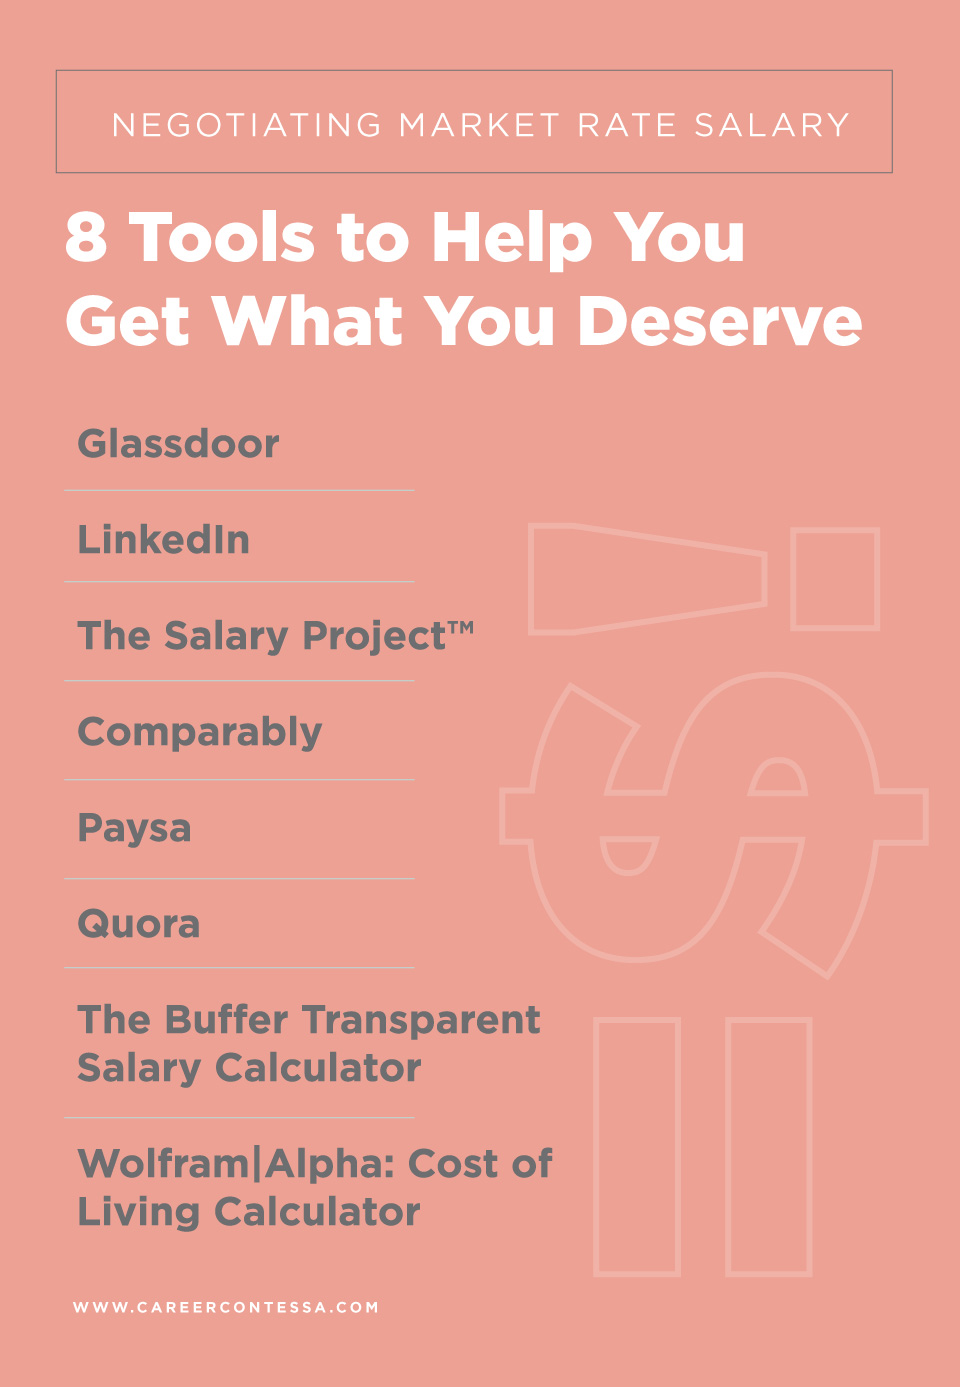 Negotiating Market Rate Salary: 8 Tools to Help You Get What